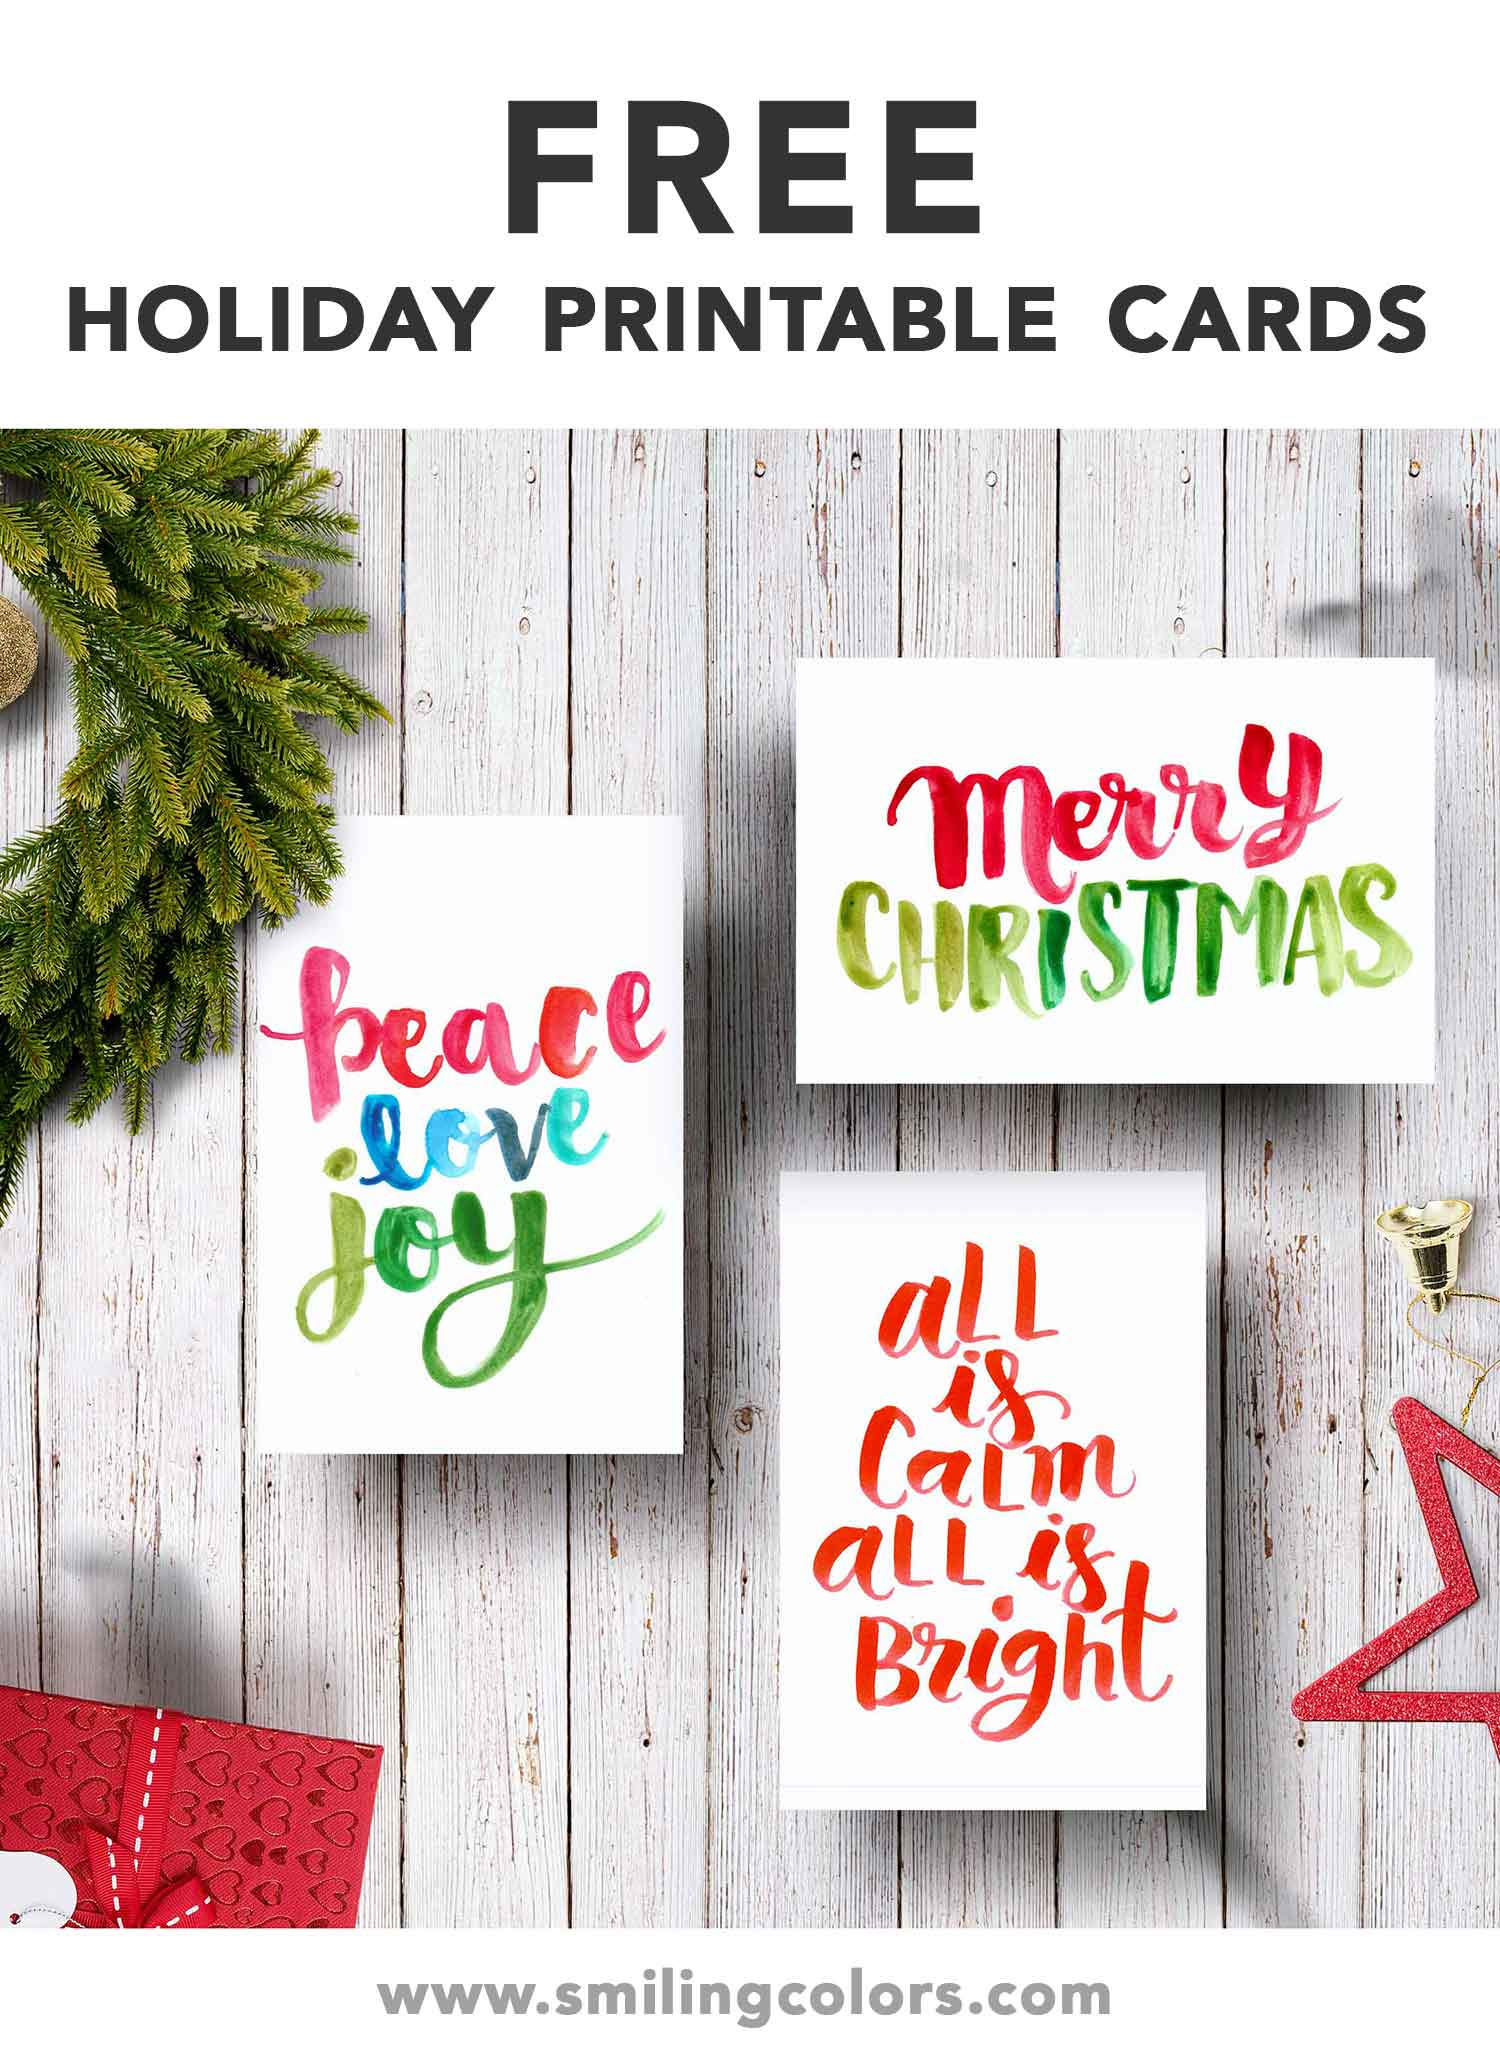 - FREE Printable Holiday Cards That You Can Download And Print NOW